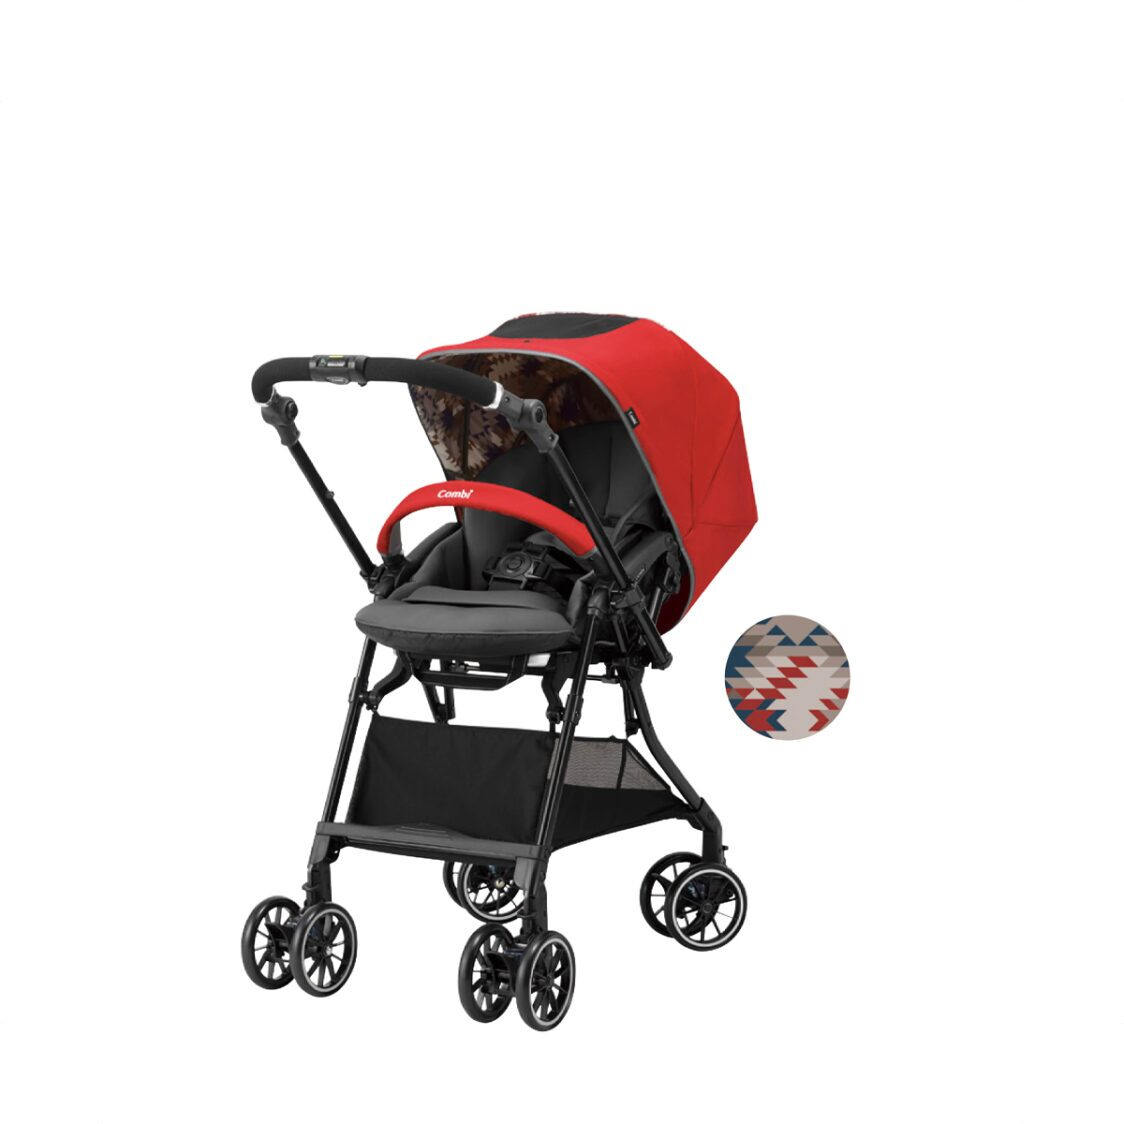 Combi Sugocal Compact Red Stroller 51kg 136 Months